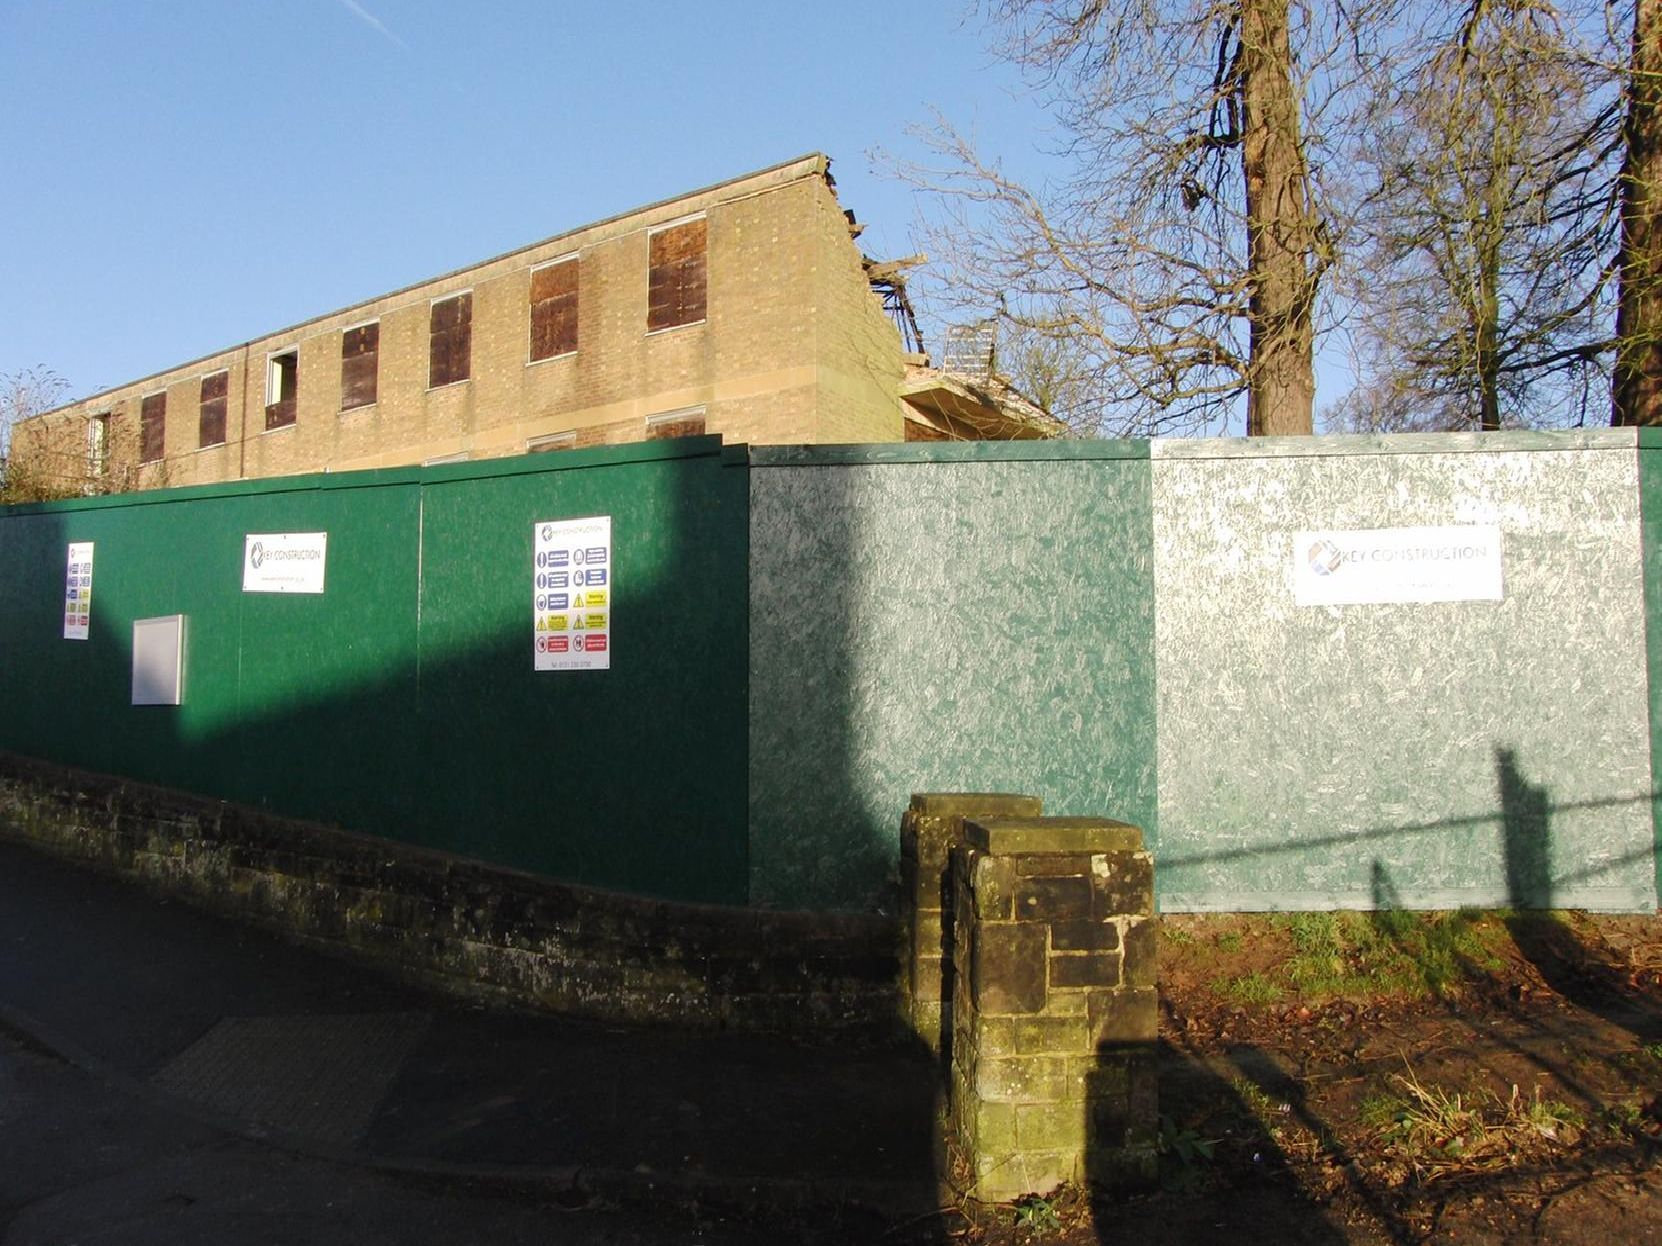 Demolition work is currently taking place at the old police station in Warwick. Photo by Geoff Ousbey.